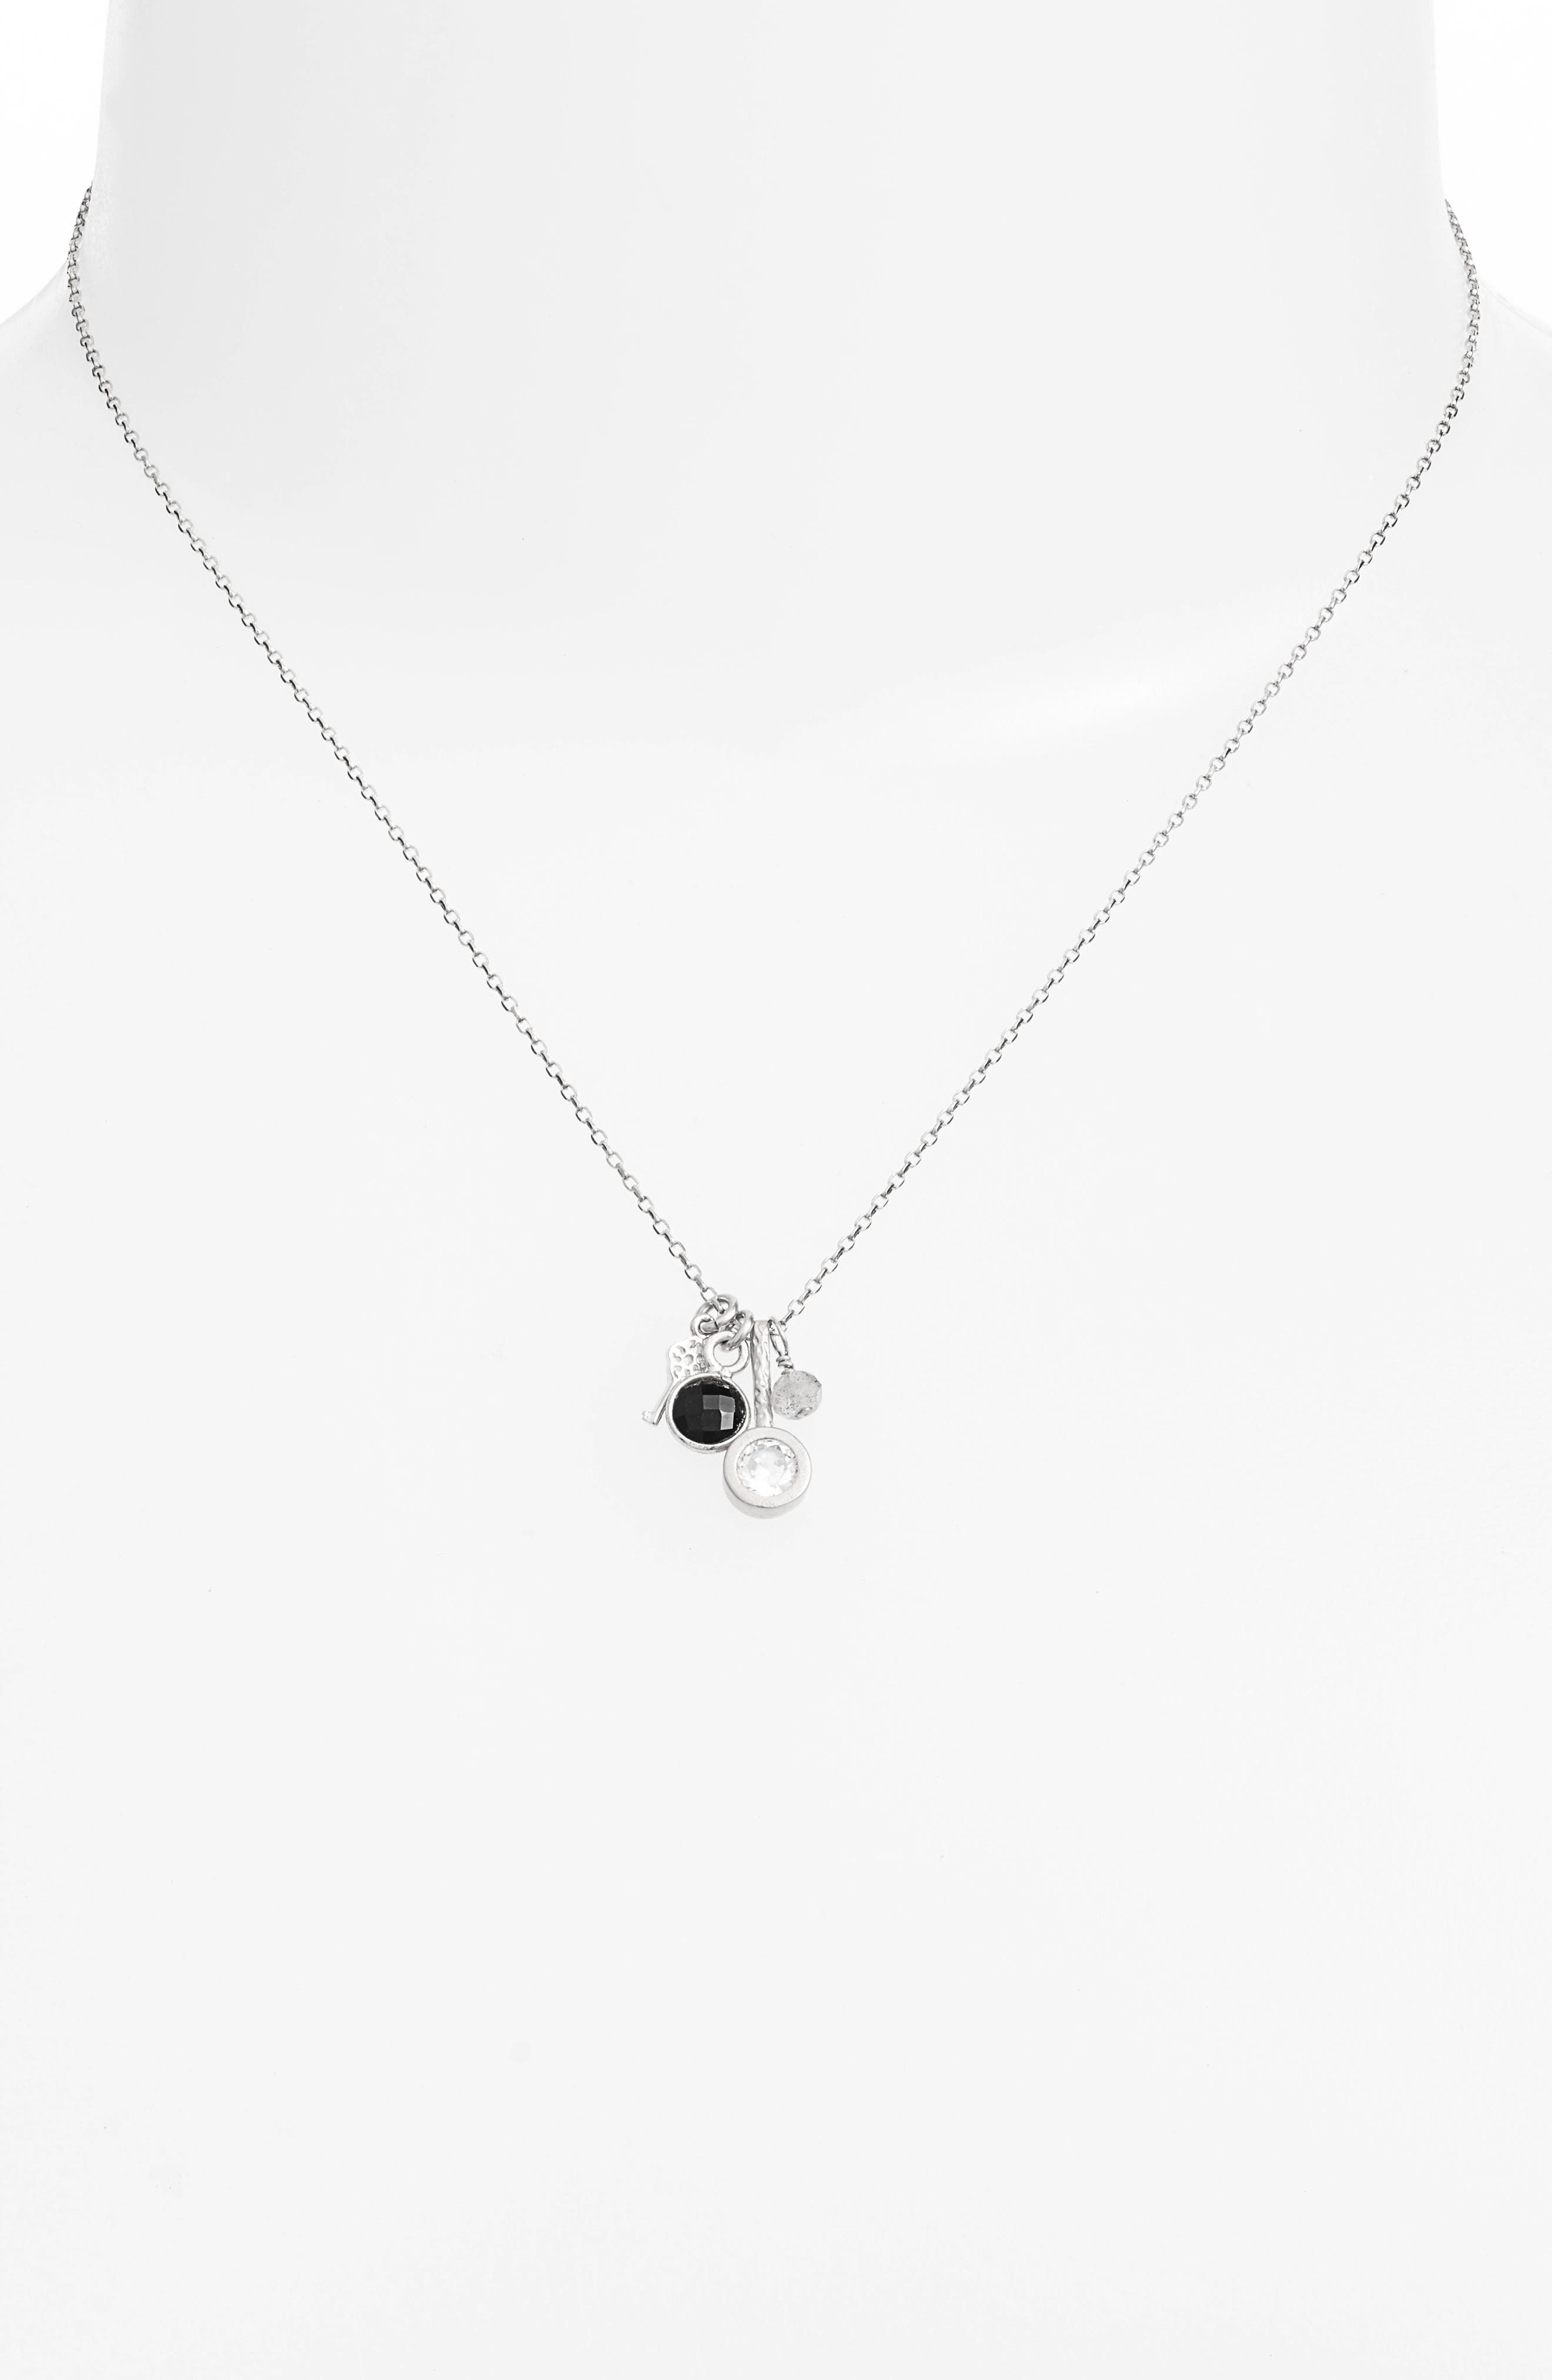 All Good Things Onyx Necklace,                             Alternate thumbnail 2, color,                             SILVER